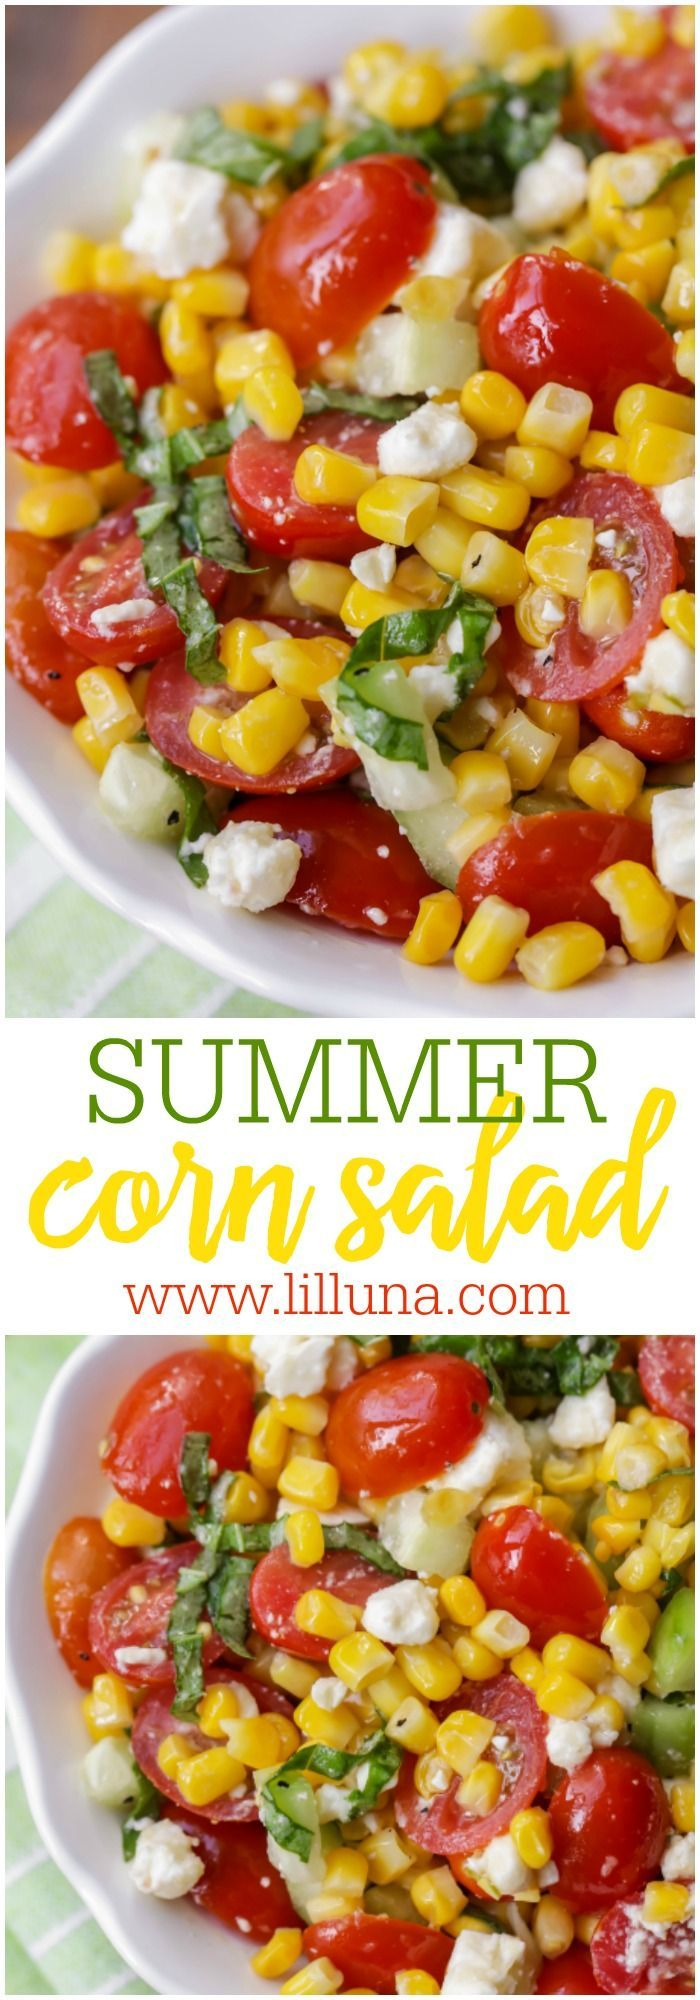 Summer Corn Salad Recipe- a light, flavorful salad filled with corn, tomatoes, feta, basil and cucumber. It's perfect for BBQs and will be a hit at any party!